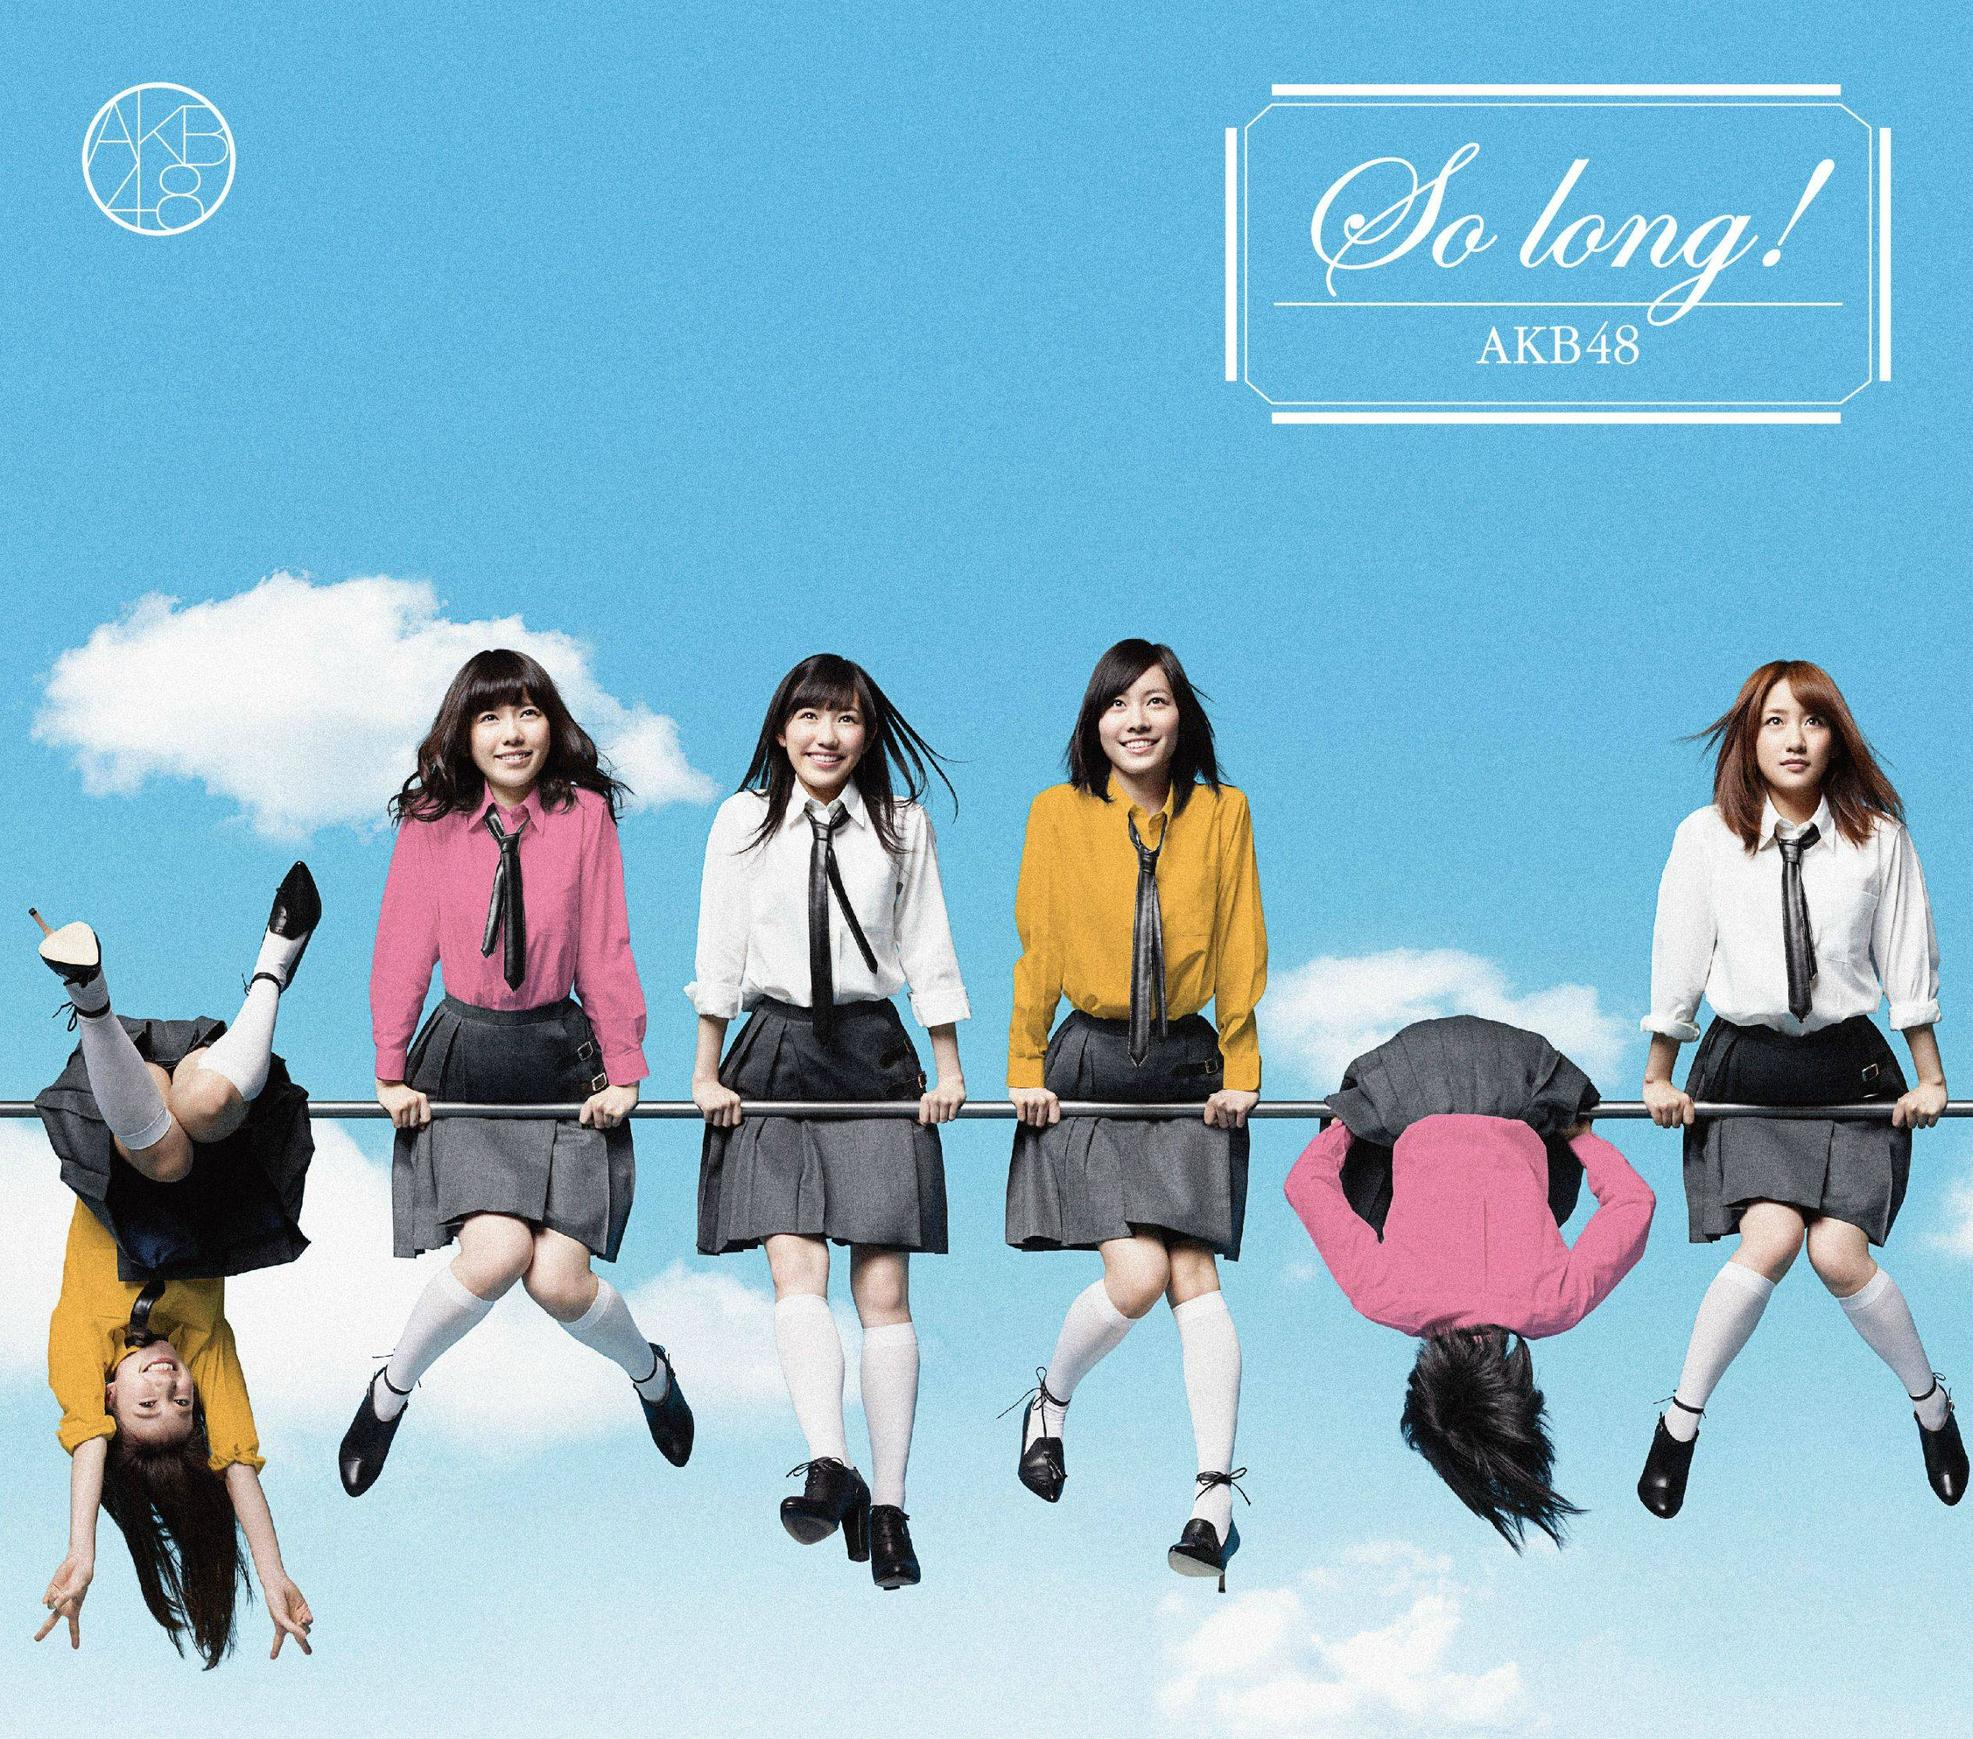 File:akb48 So long typea limited.jpg